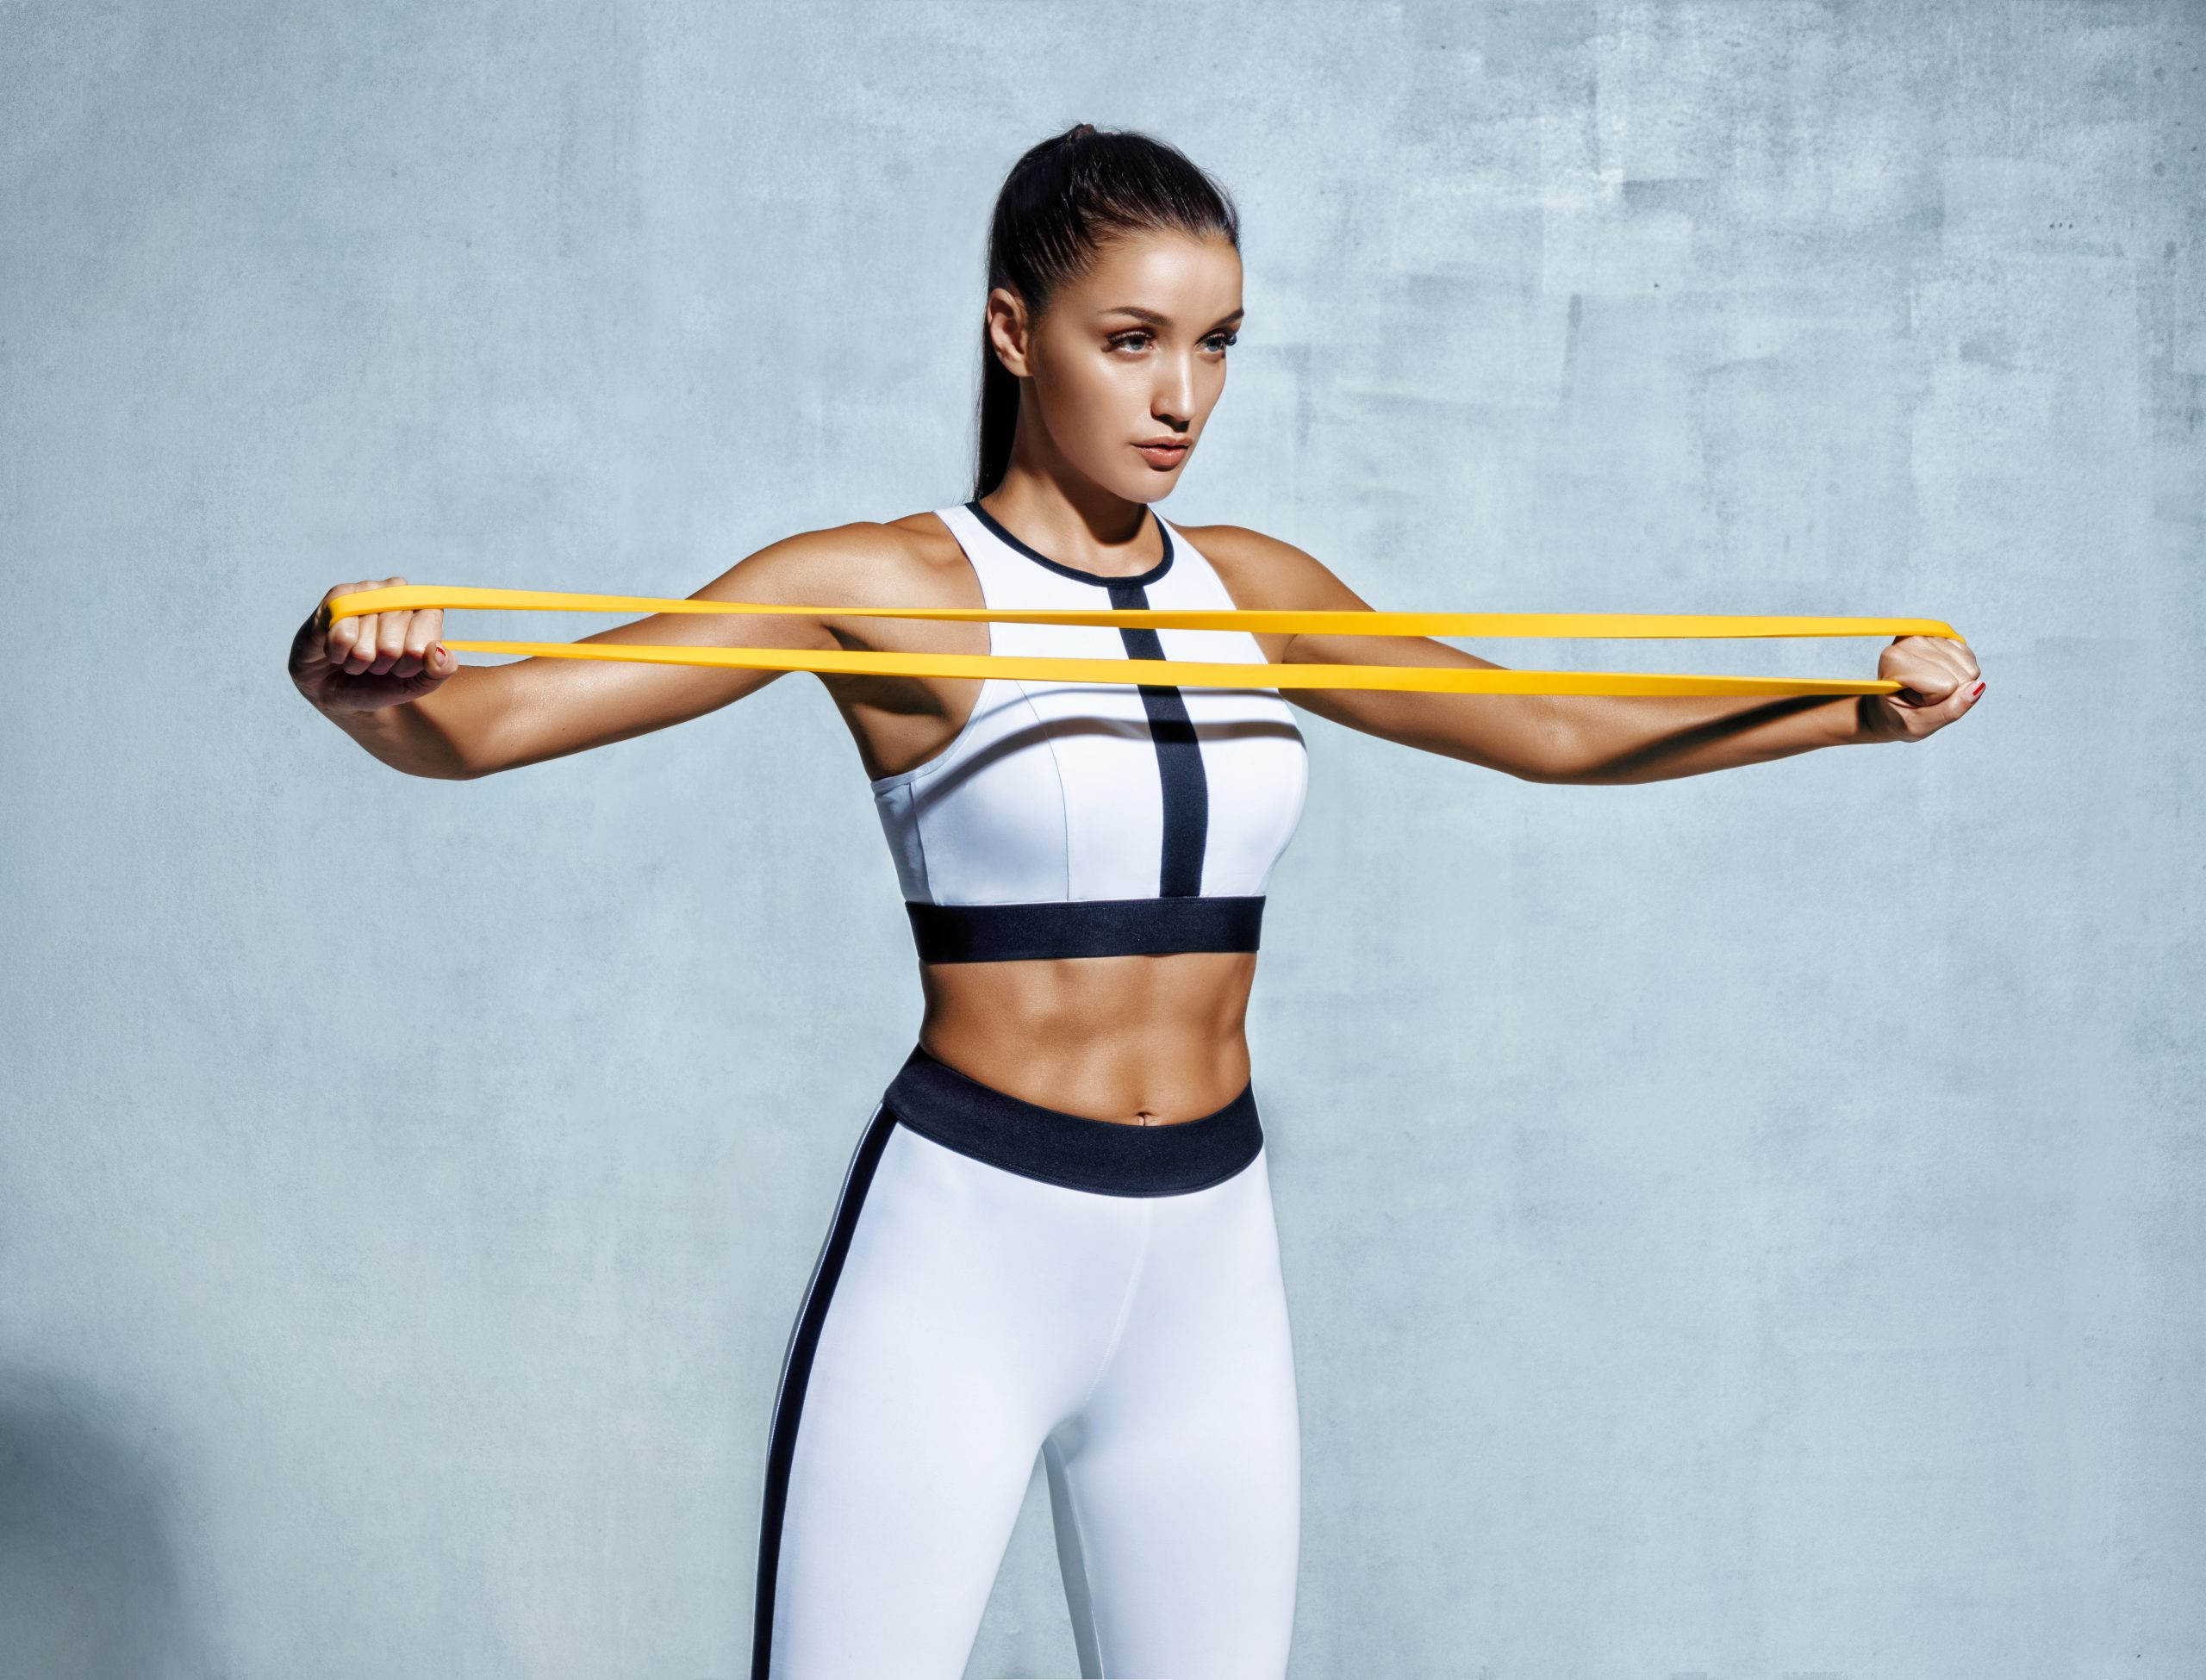 Resistance Band Exercises – Top 10 That You Can Do At Home